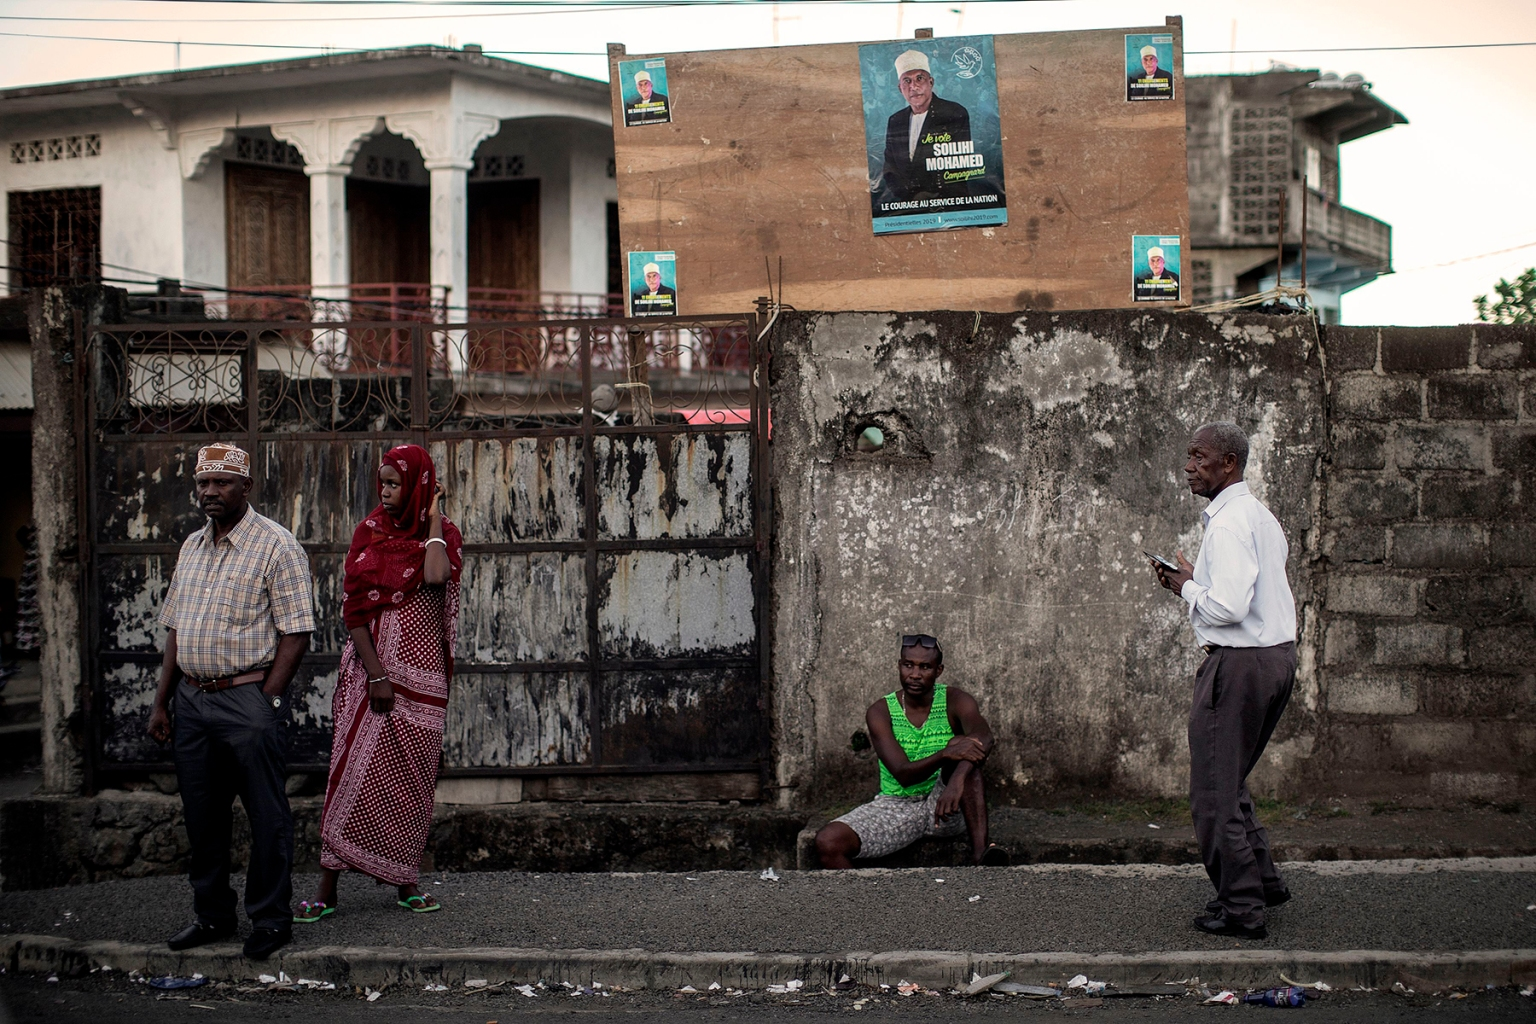 Comoros residents gather at a presidential campaign rally in the village of Domoni on March 20. An arrangement to rotate power among the three islands in the East African archipelago nation helped quell years of discontent and coups in the late 1990s. GIANLUIGI GUERCIA/AFP/Getty Images